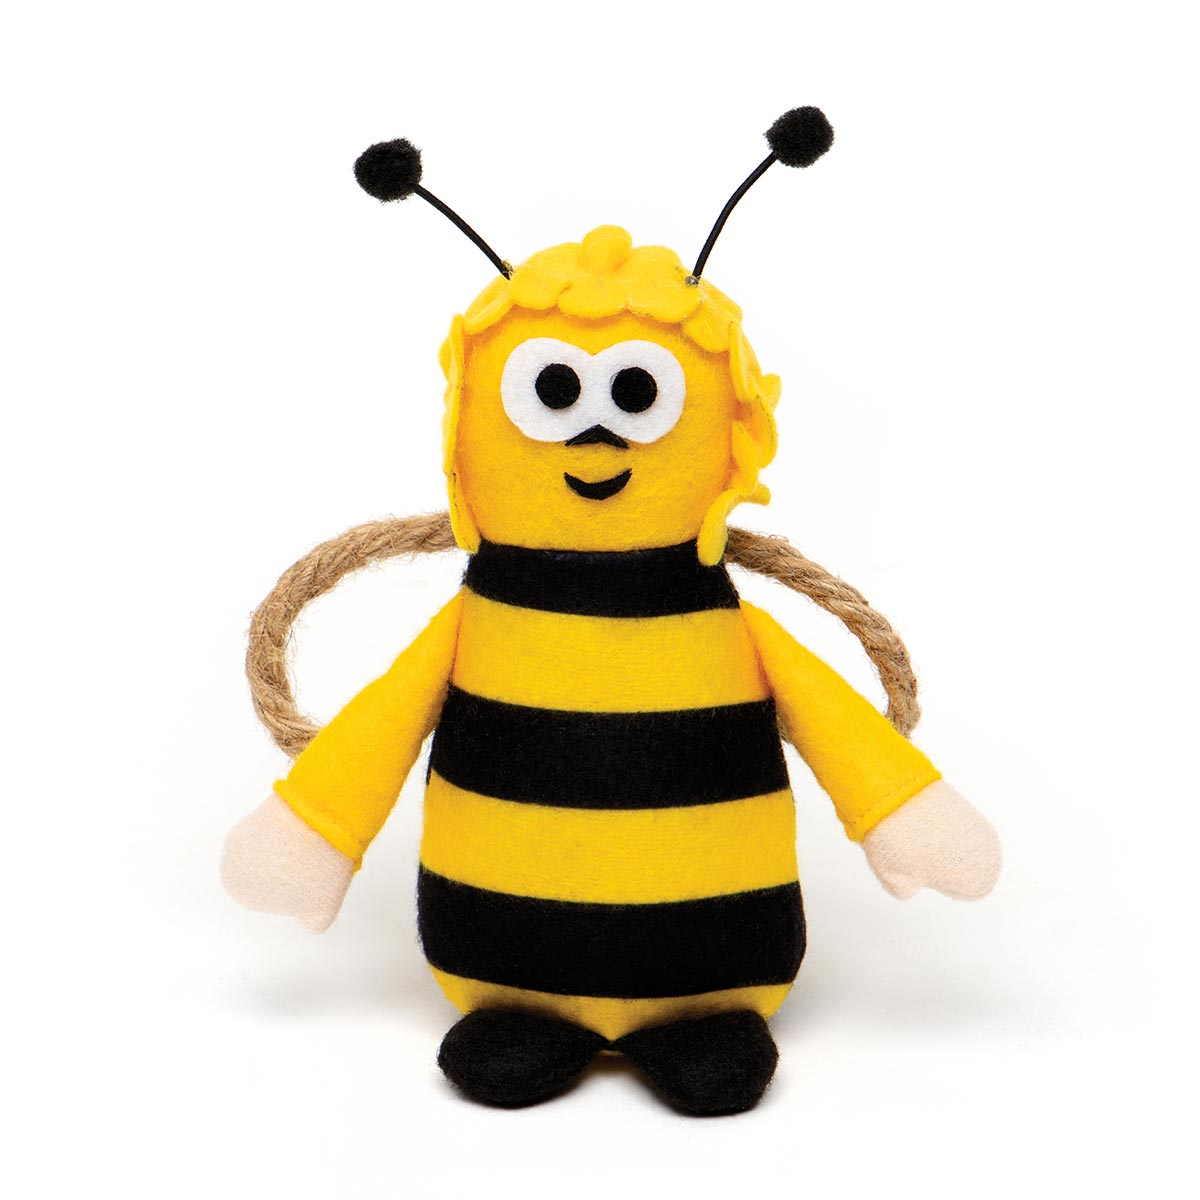 "HUMBLE BUMBLE BEE WITH ANTENNA, ARMS, ROPE WINGS AND FEET 6""x3.5"